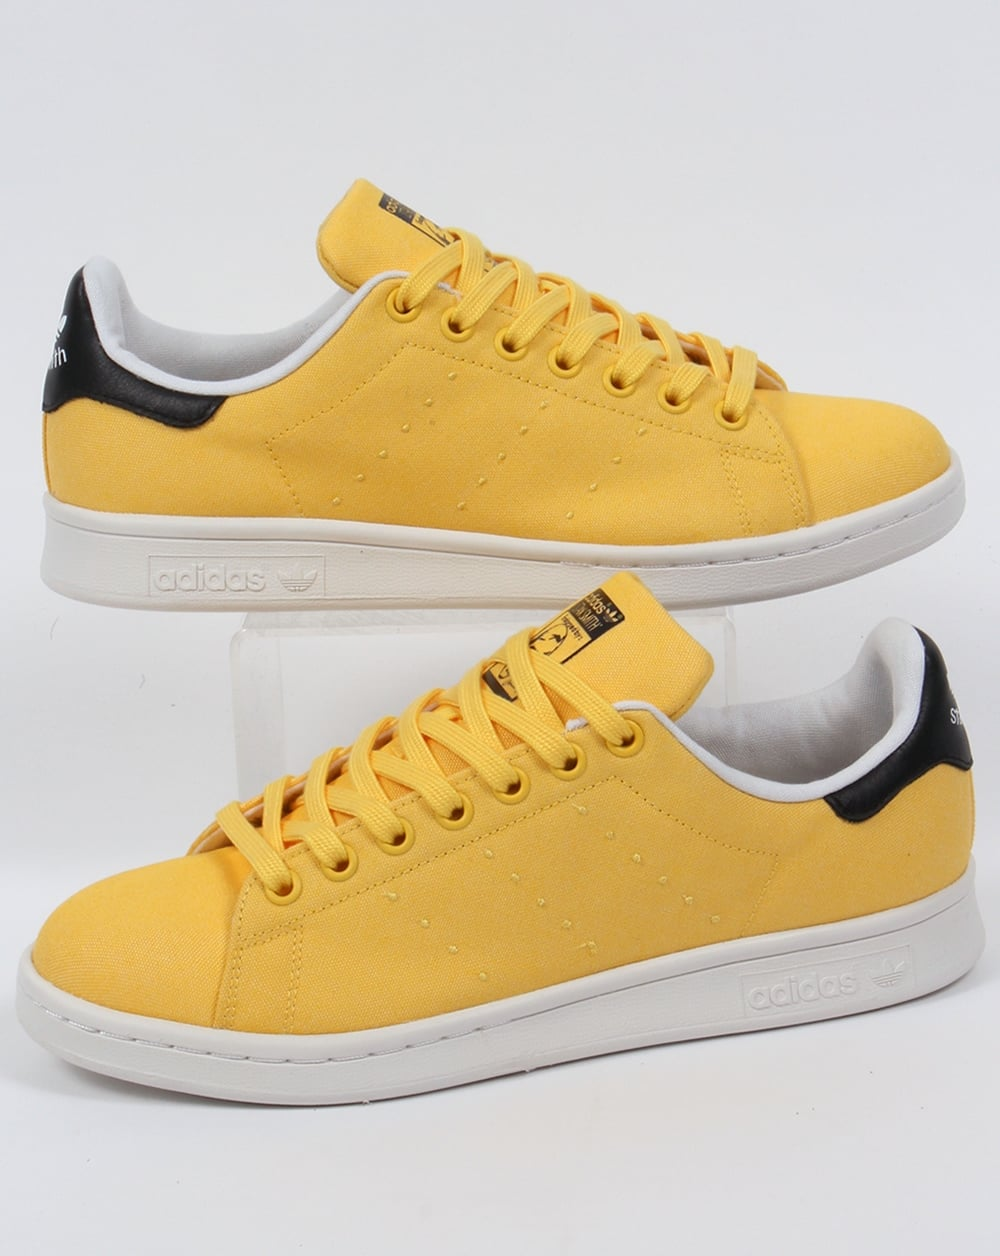 new style 9ff74 64b61 adidas Trainers Adidas Stan Smith Trainers Spring Yellow